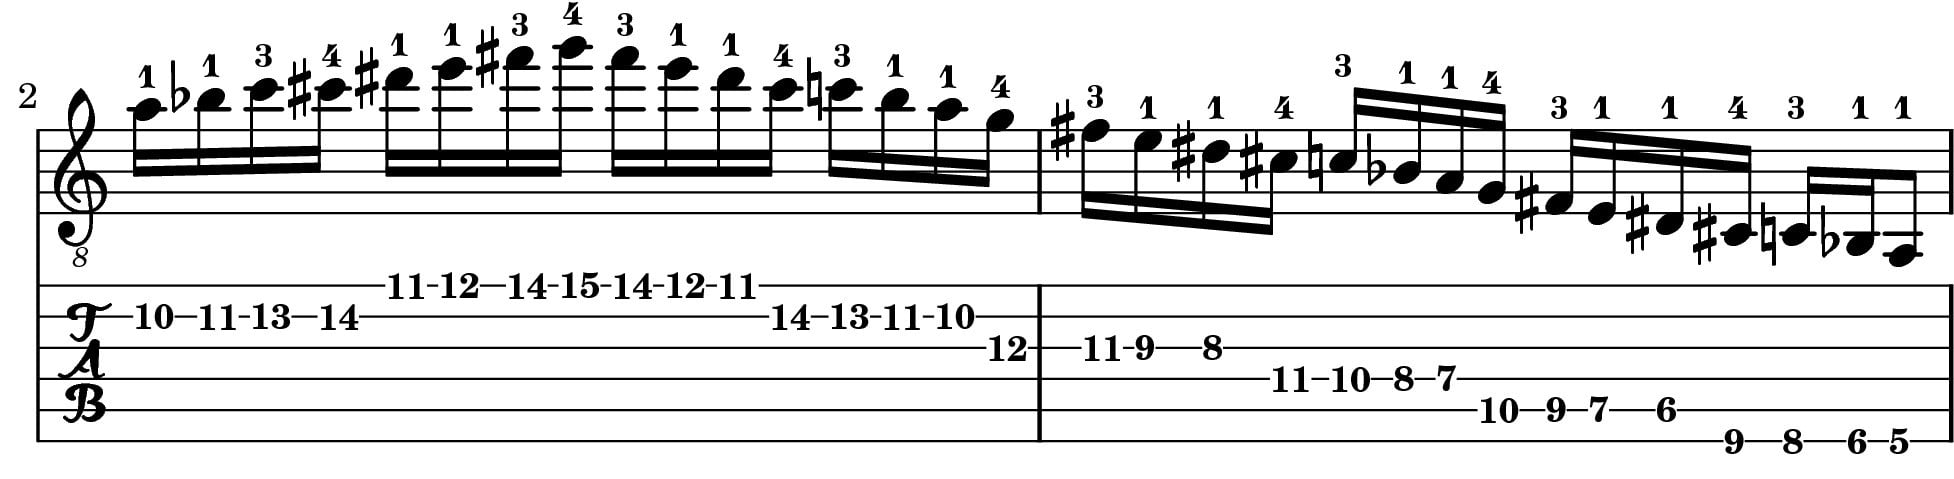 More Experimental Scales Of Guitar For Metal That Eric Alper